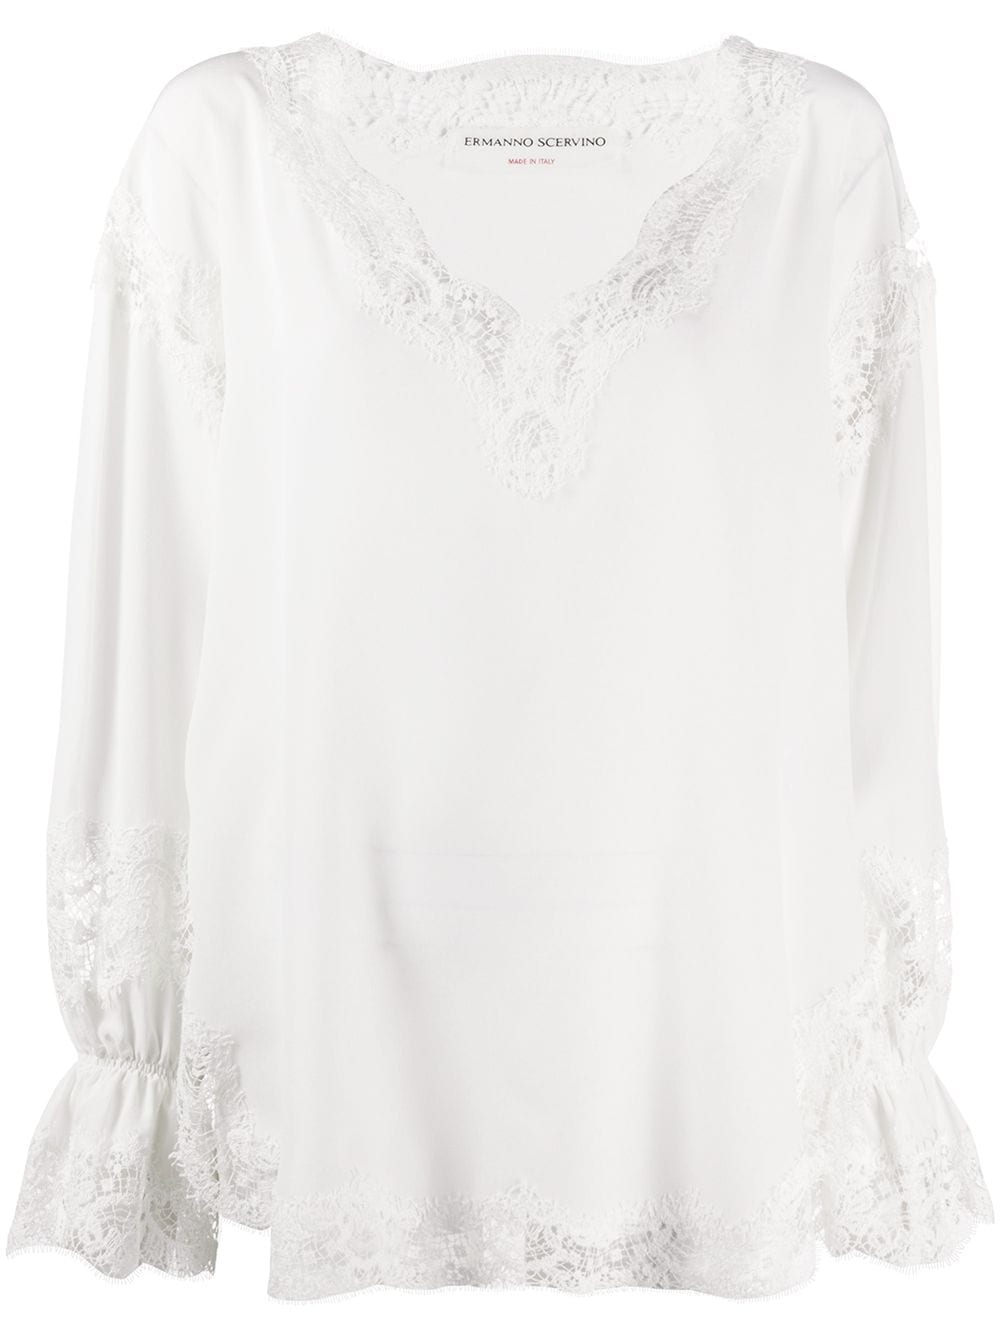 Ermanno Scervino scalloped lace silk blouse